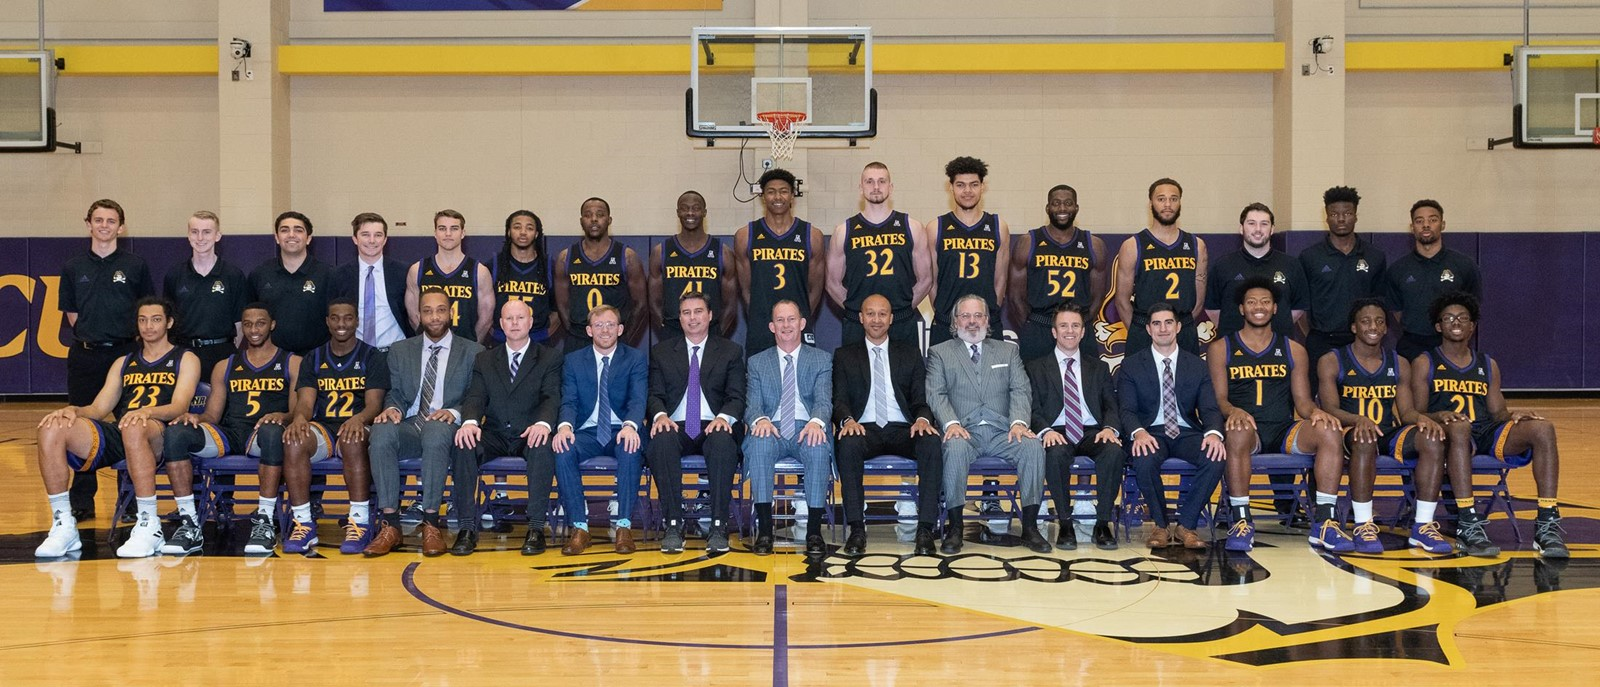 2018-19 men's basketball roster - east carolina university athletics